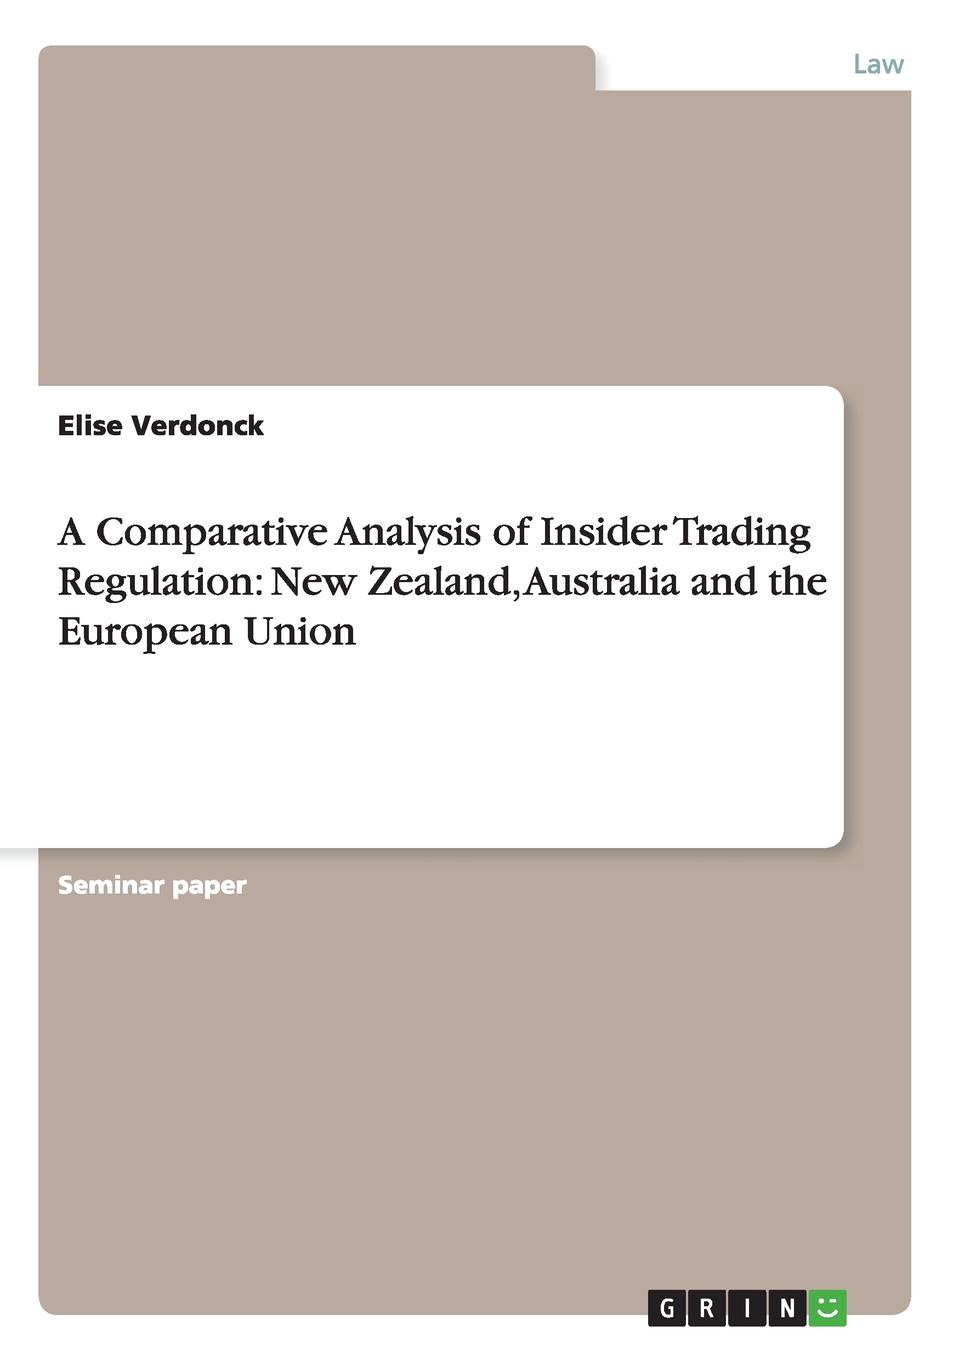 Elise Verdonck A Comparative Analysis of Insider Trading Regulation. New Zealand, Australia and the European Union halil kiymaz market microstructure in emerging and developed markets price discovery information flows and transaction costs